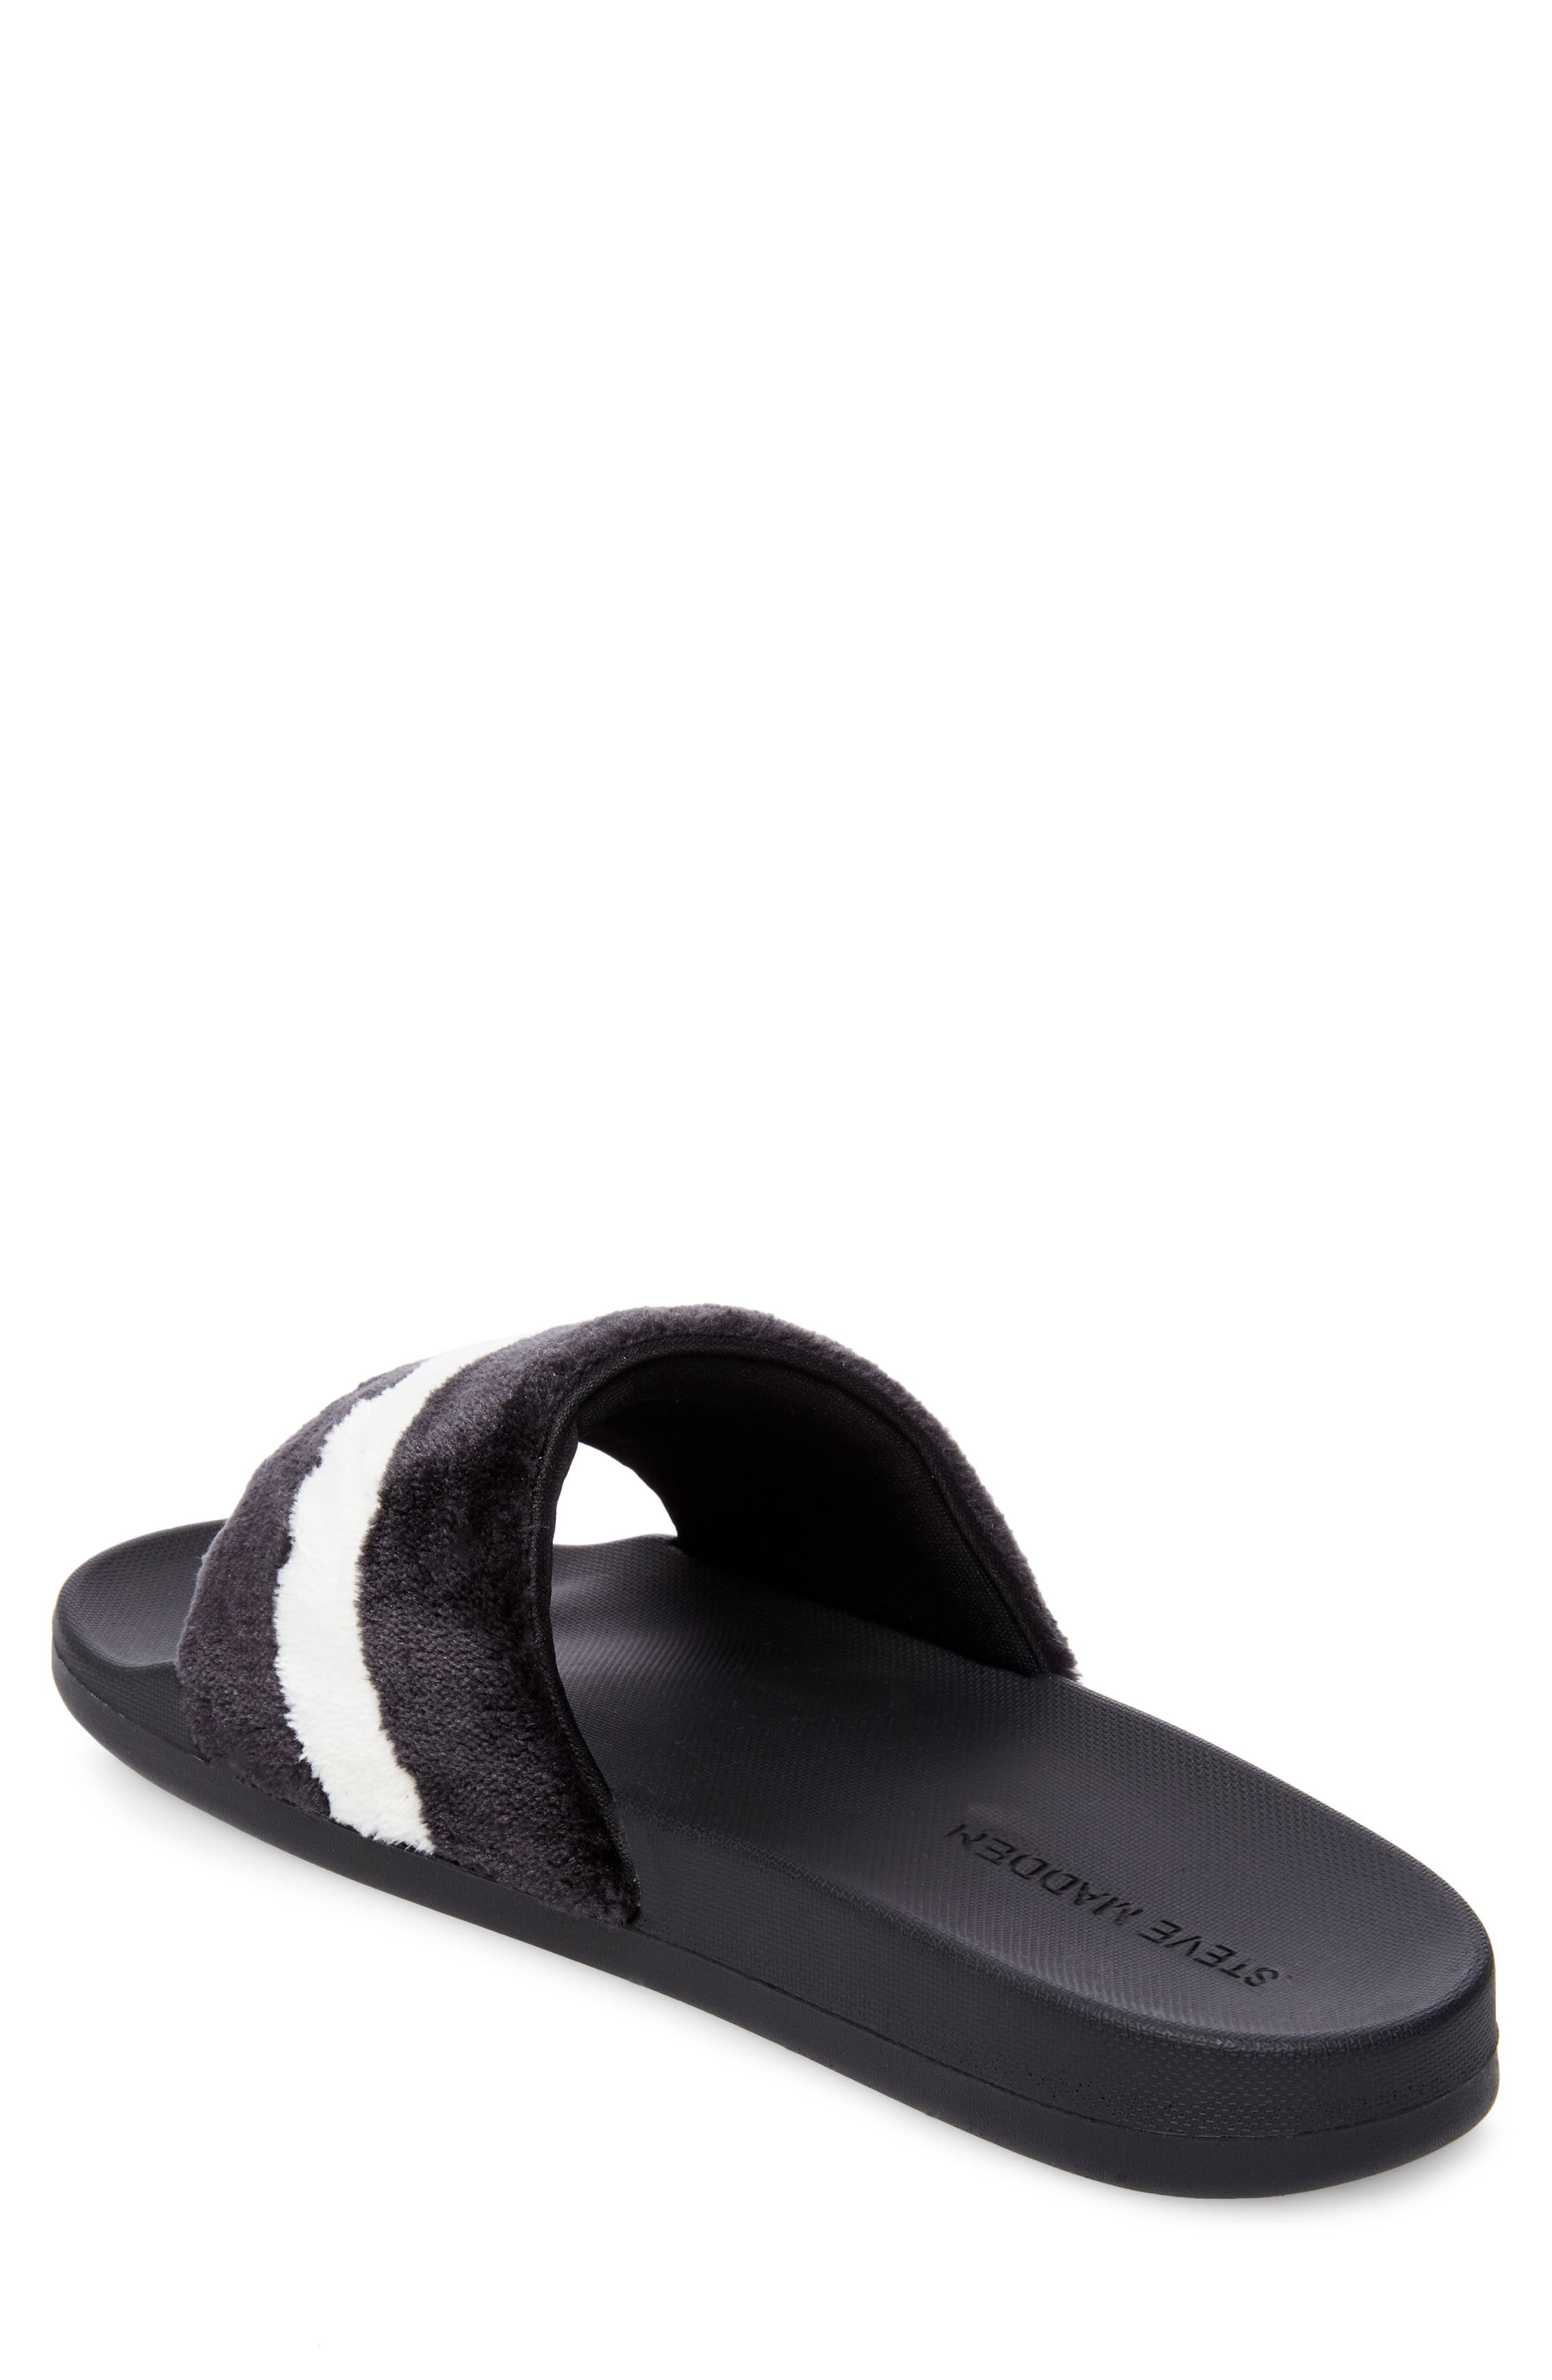 Resport Plush Slide Sandal,                             Alternate thumbnail 2, color,                             003